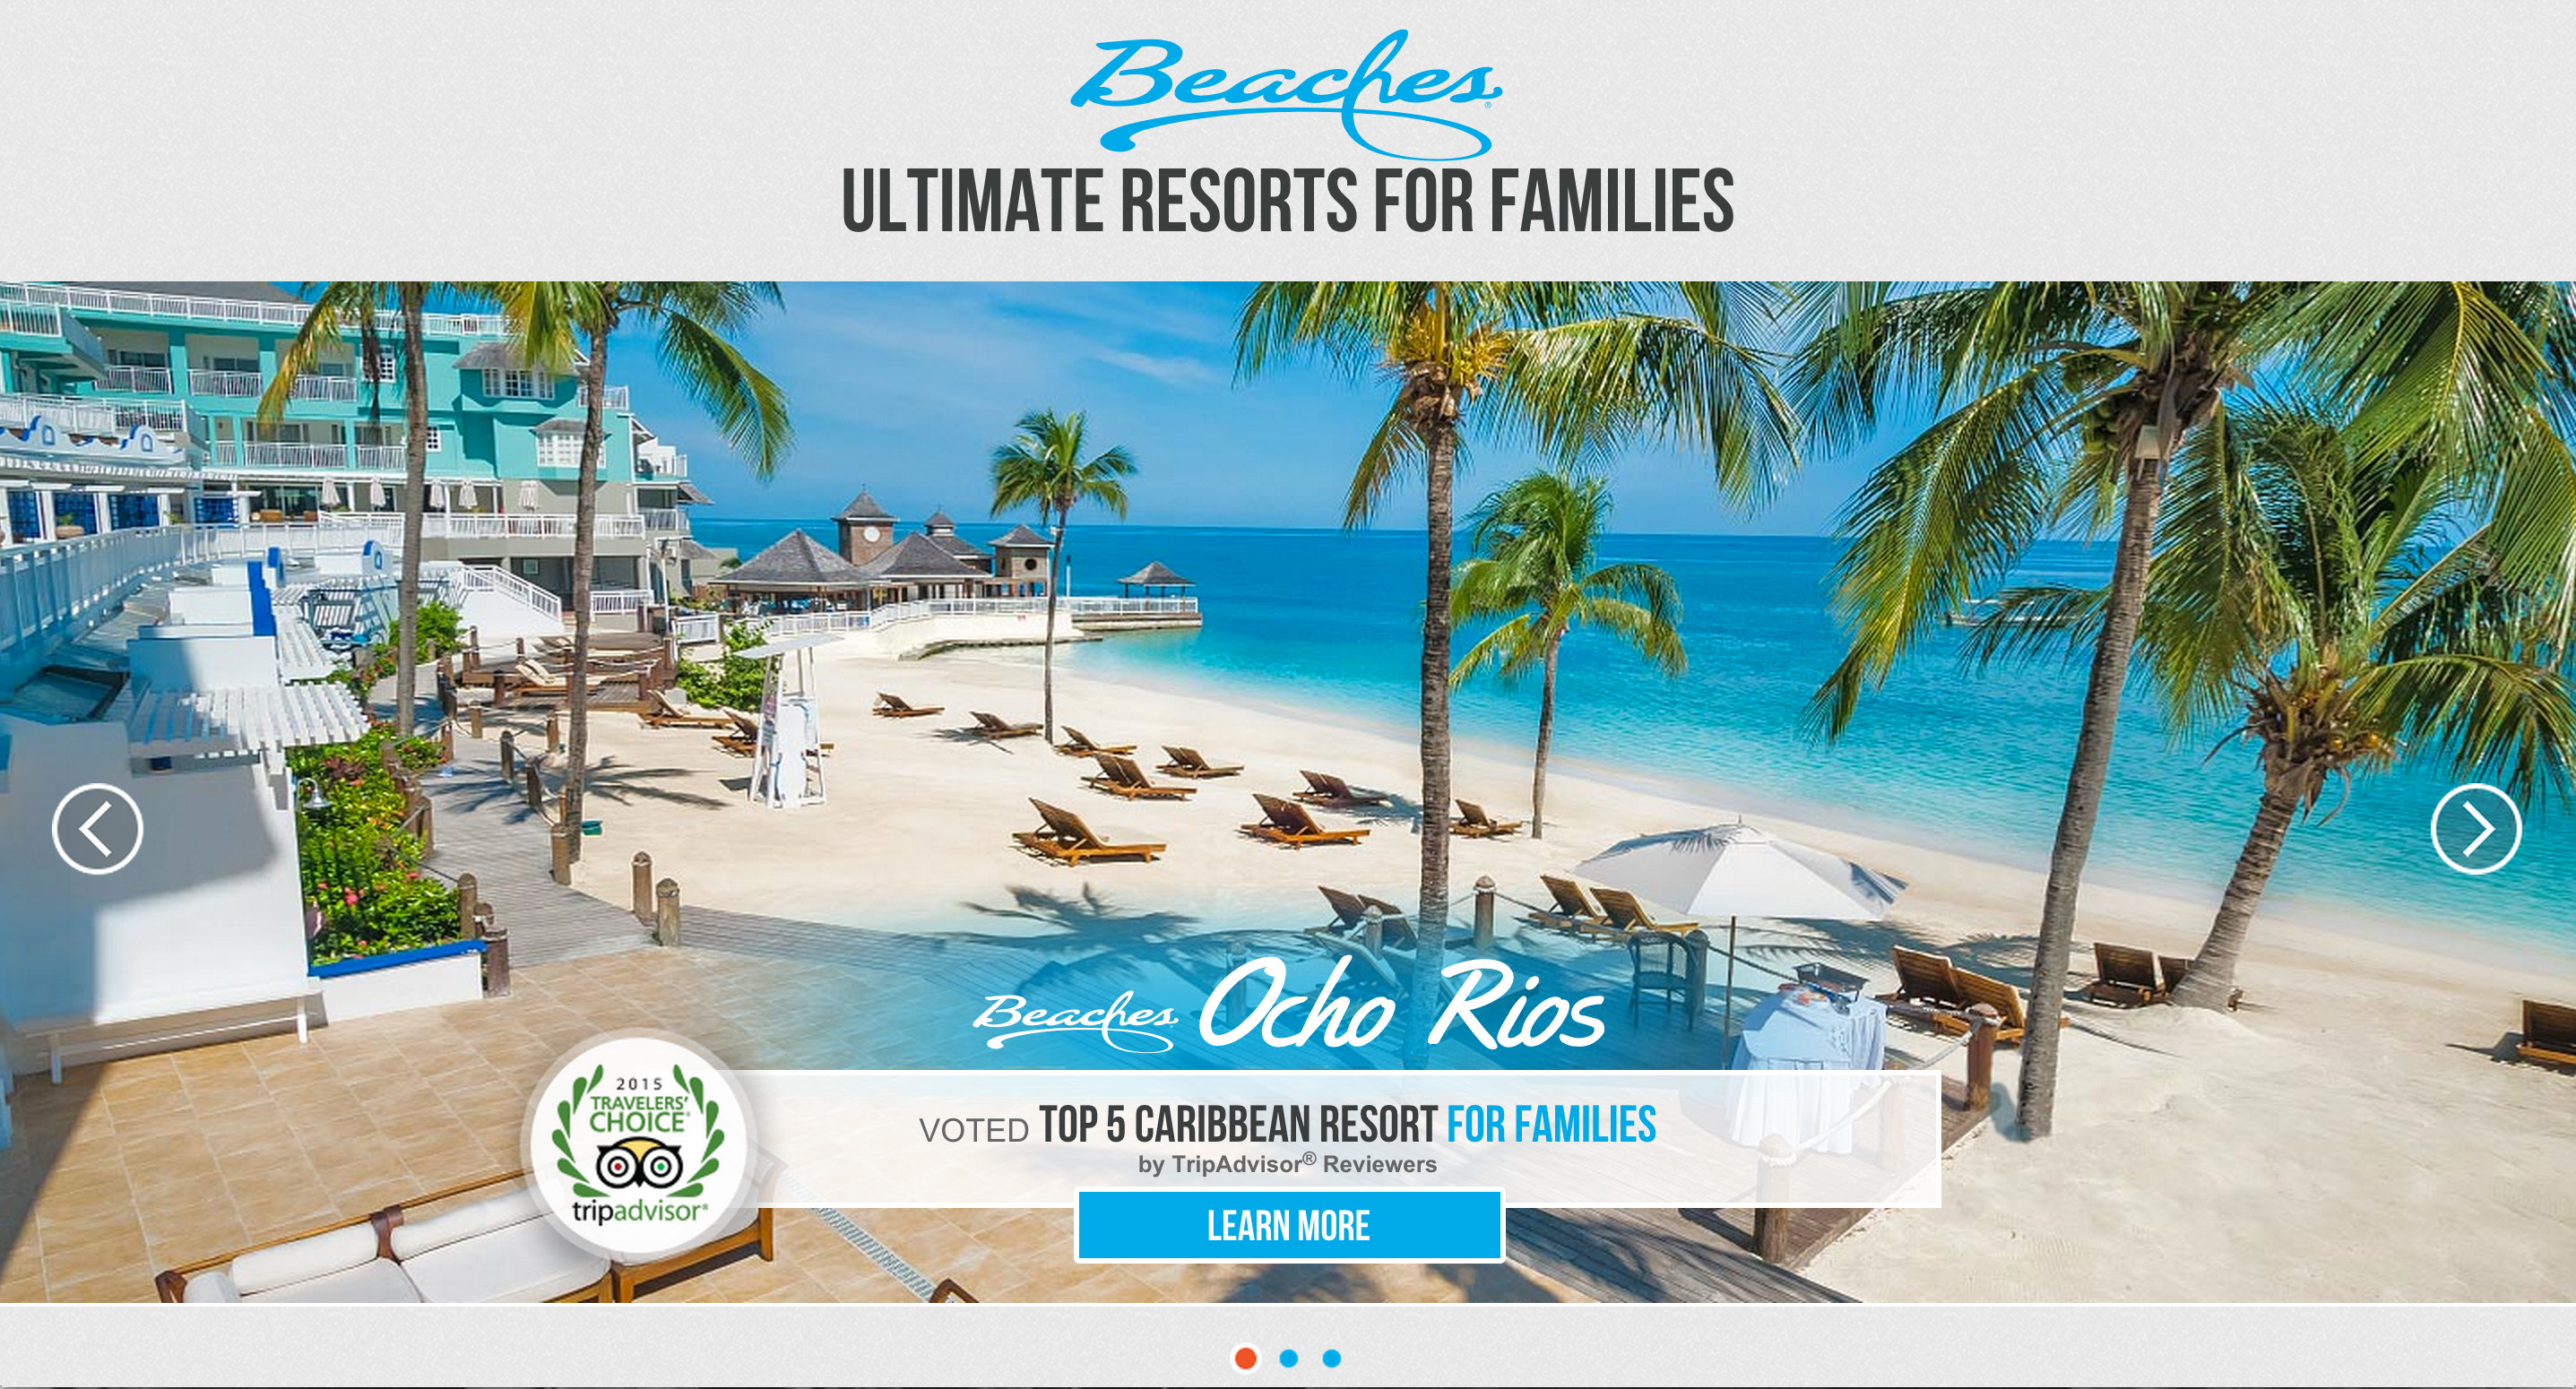 Like any other company, Beaches, an all-inclusive chain of resorts for families, must explain what its value proposition is to customers.In other words, why does a Beaches resort provide more value to vacationing families than do other resorts?